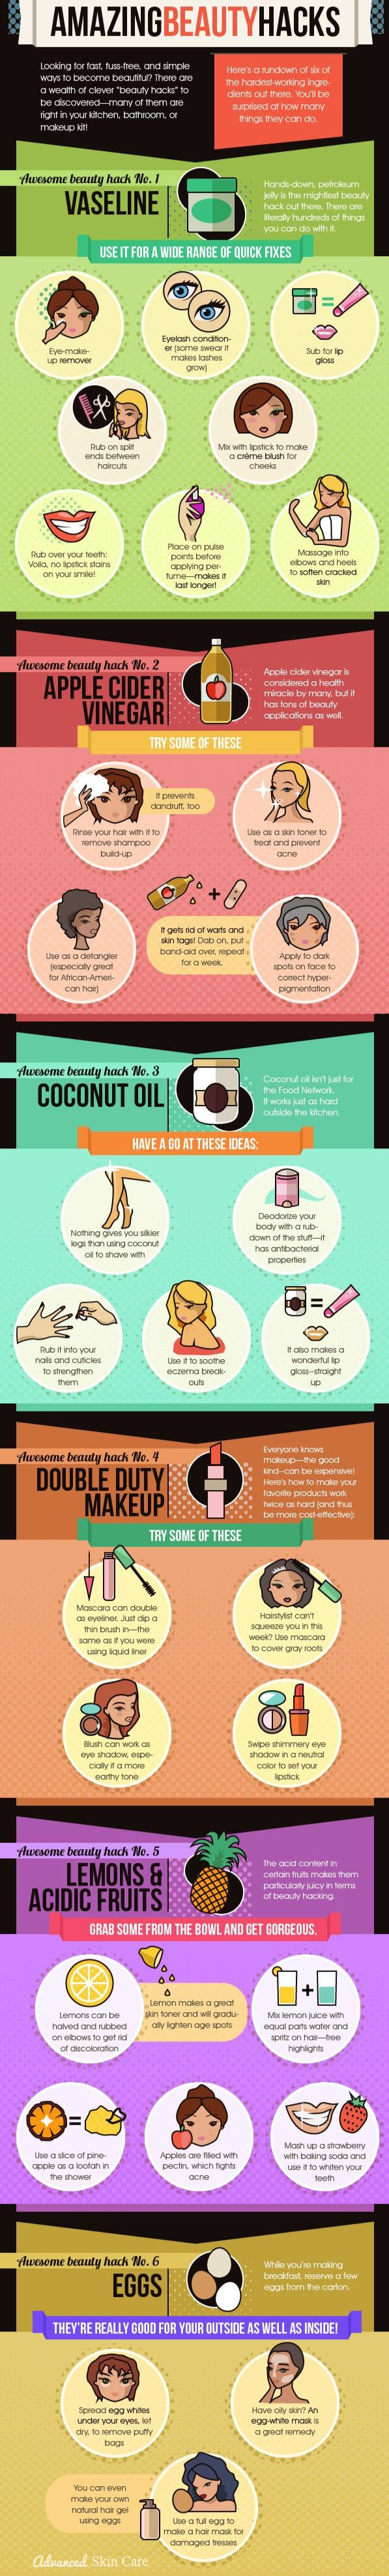 Beauty does not have to be costly.  Checkout these simple and inexpensive beauty hacks you can easily incorporate into your daily beauty routine.